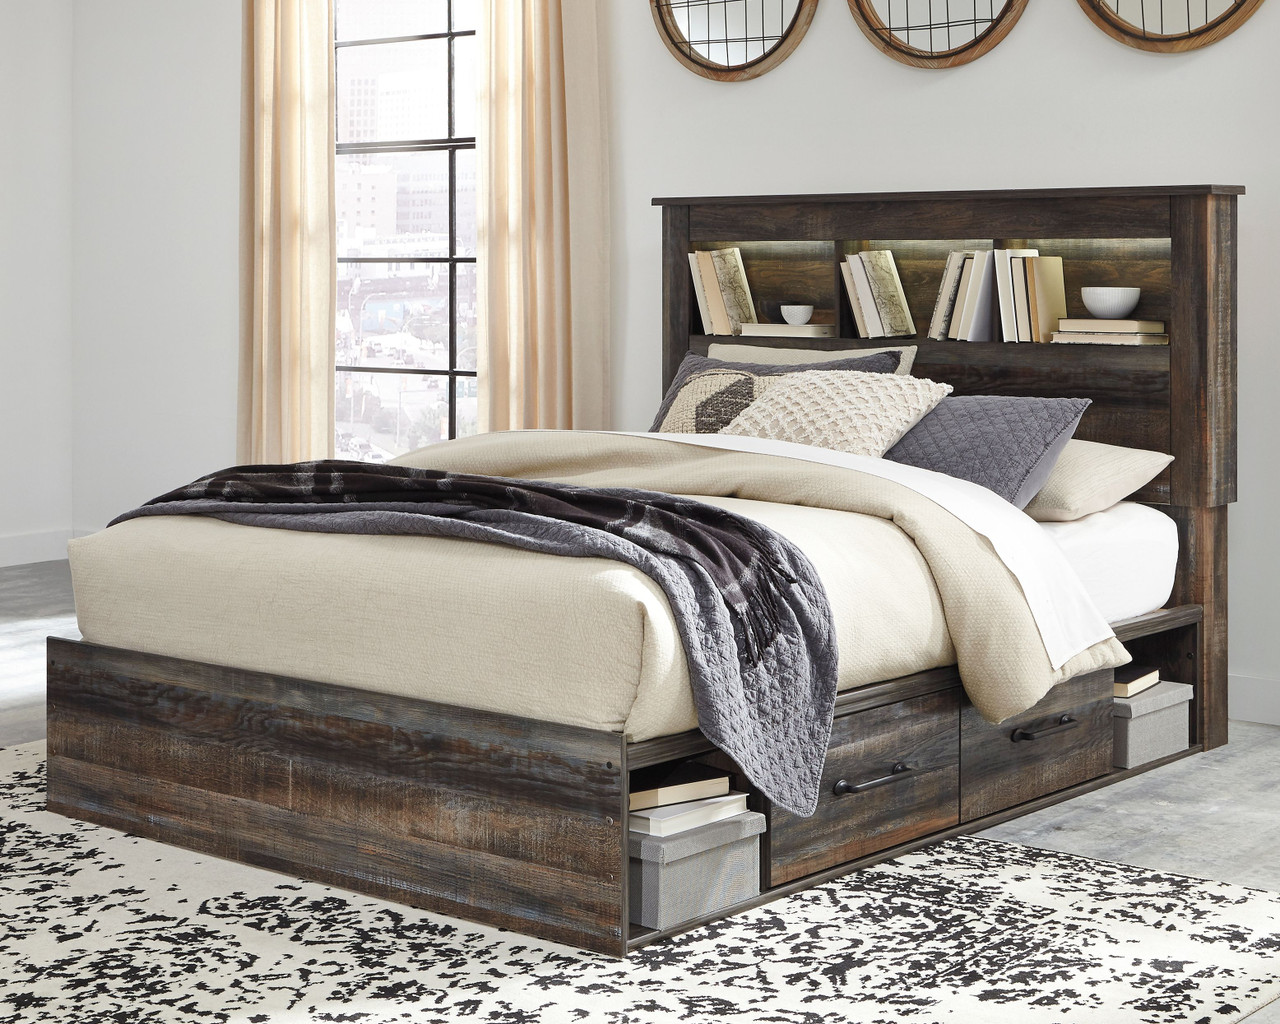 Drystan Multi Queen Bookcase Bed With Under Bed Storage On Sale At American Furniture Of Slidell Serving Slidell La